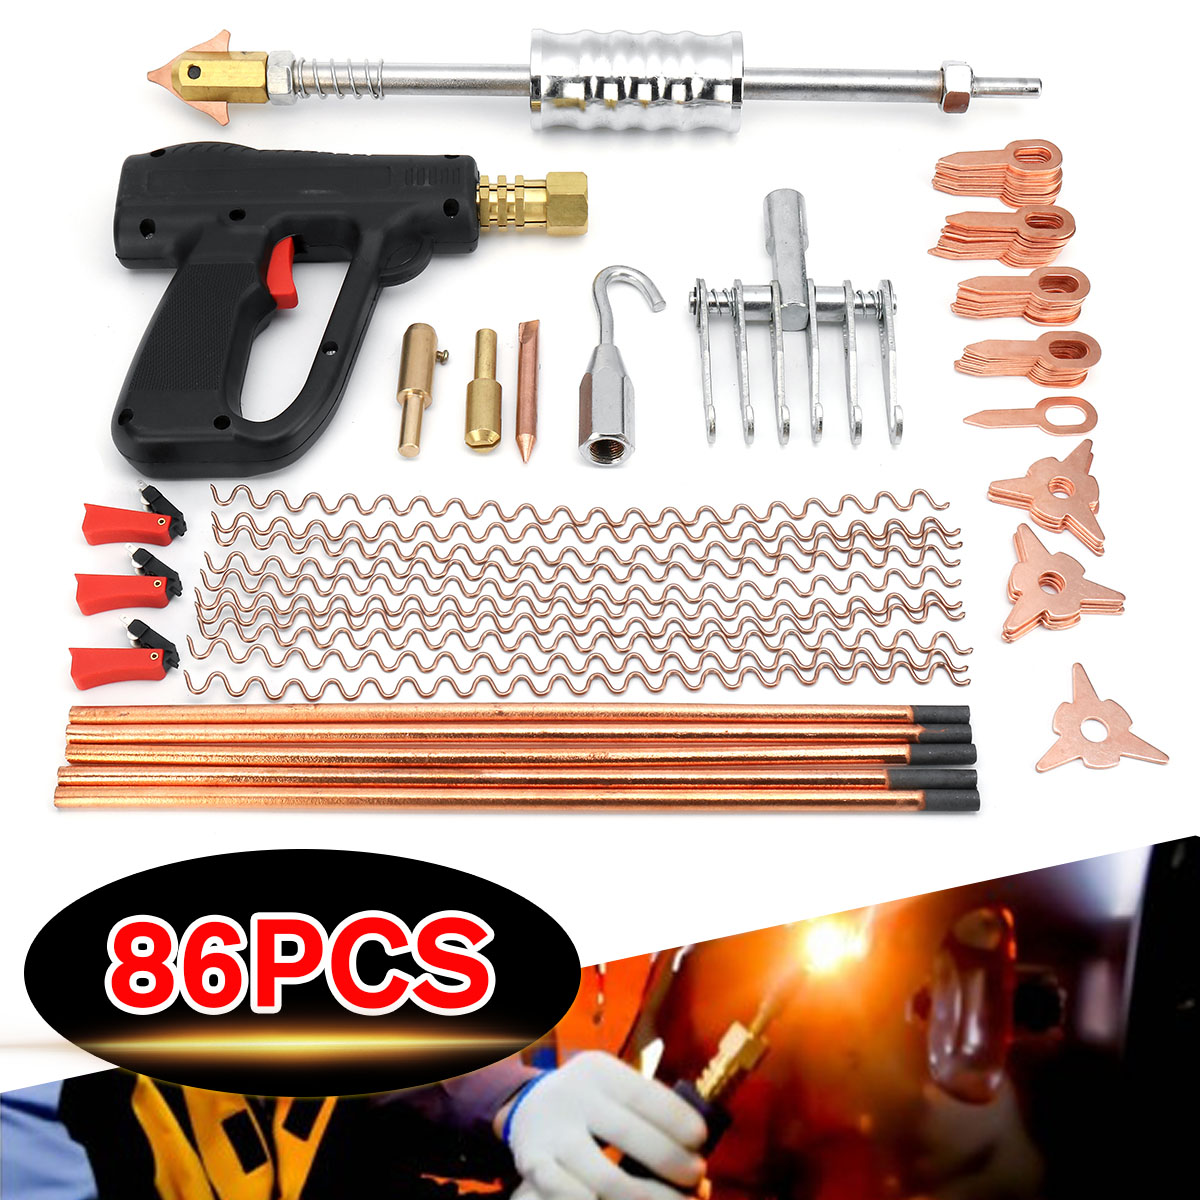 86pcs set Car Body Dent Repair Puller Kit Dent Spot Repair Removal Device Stud Mini Welding Machine Pulling Hammer Tool Kit